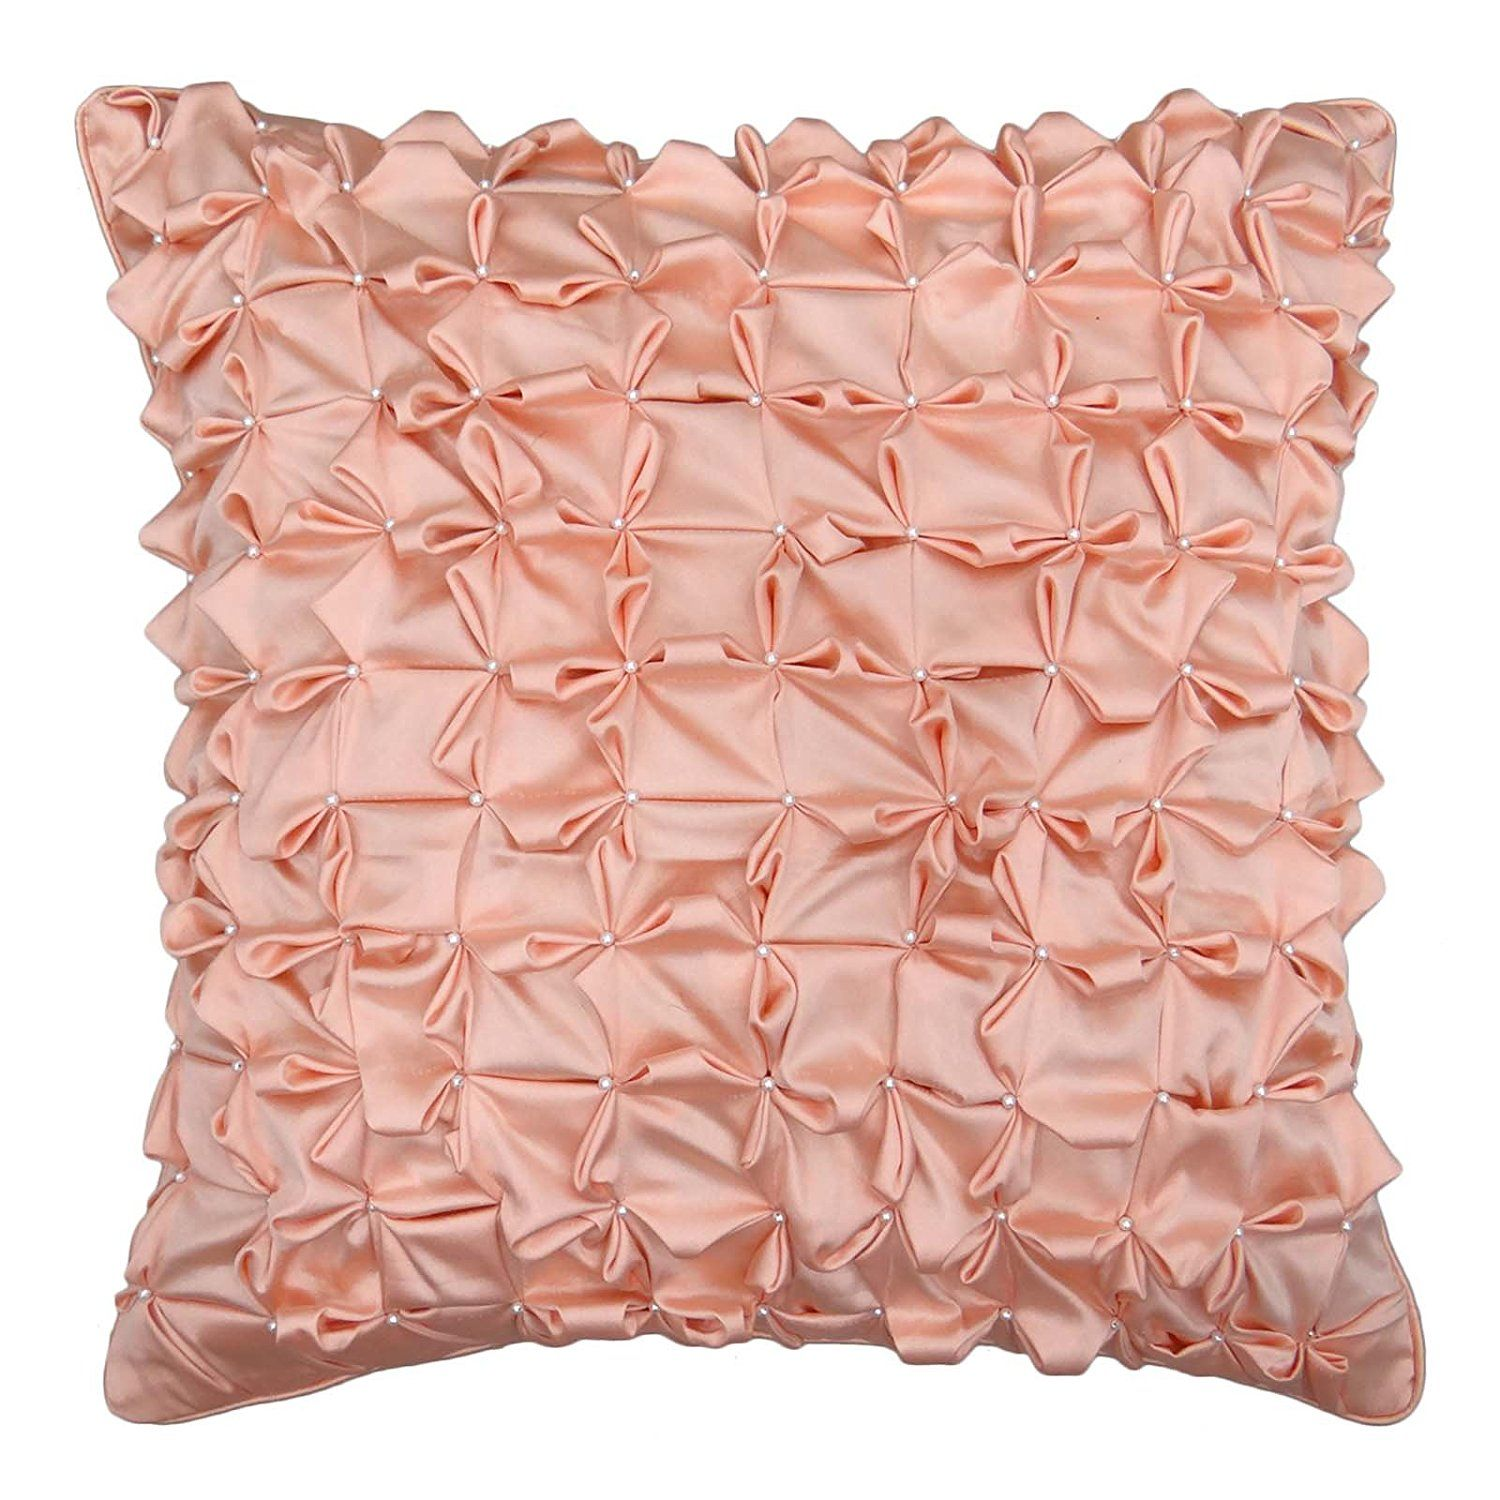 S4sy Decor Handmade Satin Cushion Cover Peach Pillowcase Square Pillow 16 X To View Further For This Item Visit The Image Link